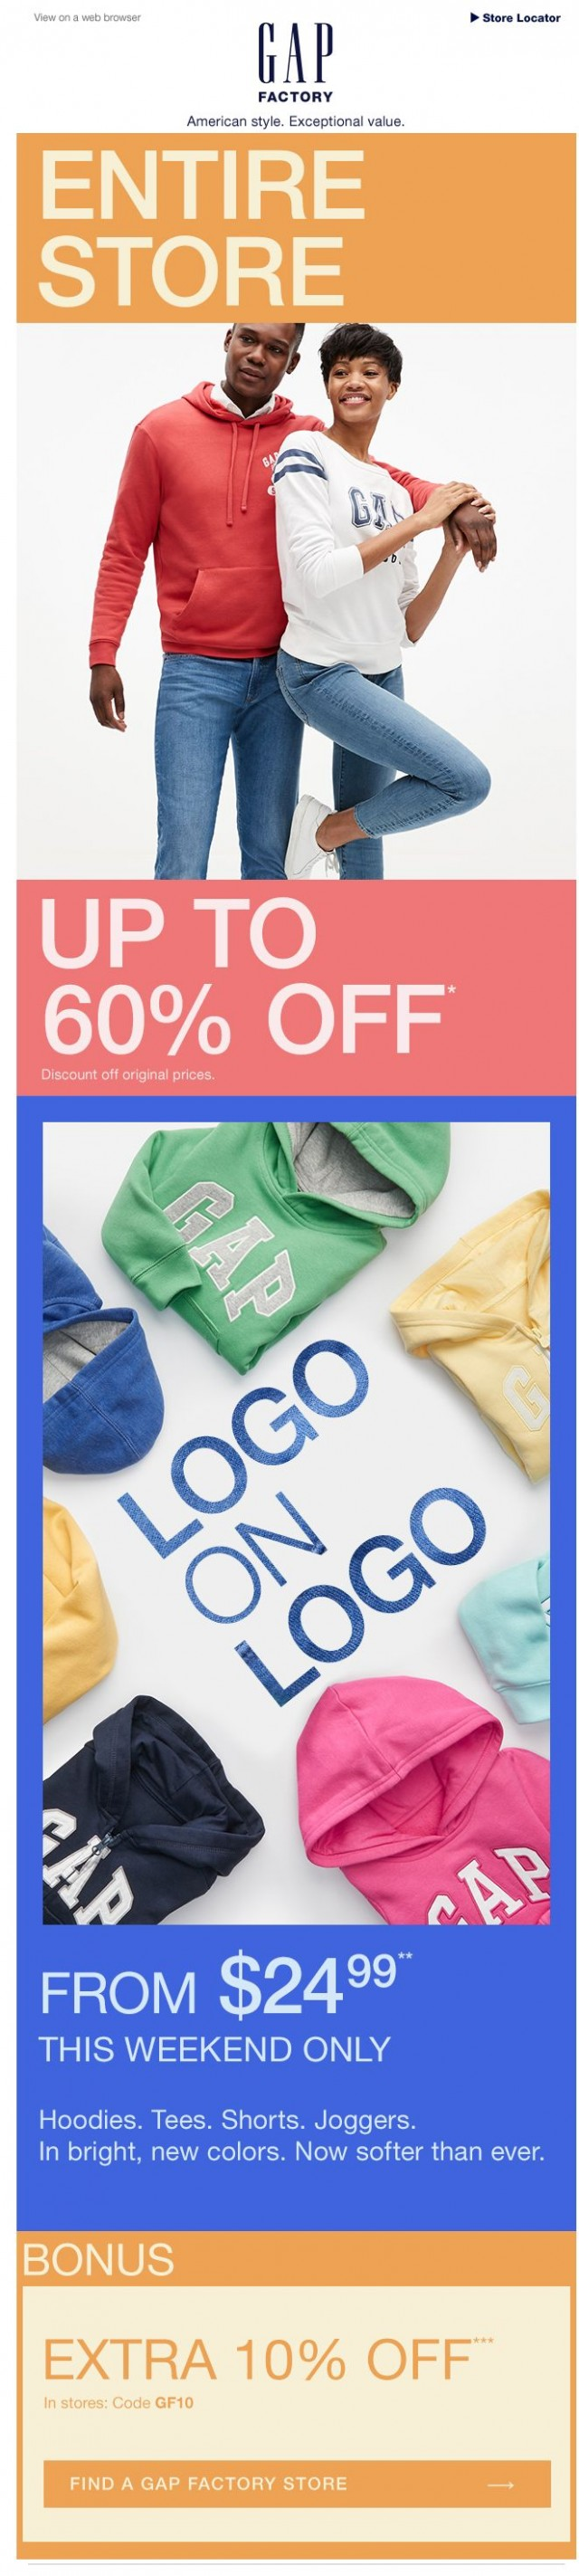 Coupon for: Gap Factory - Wait 60% off!?